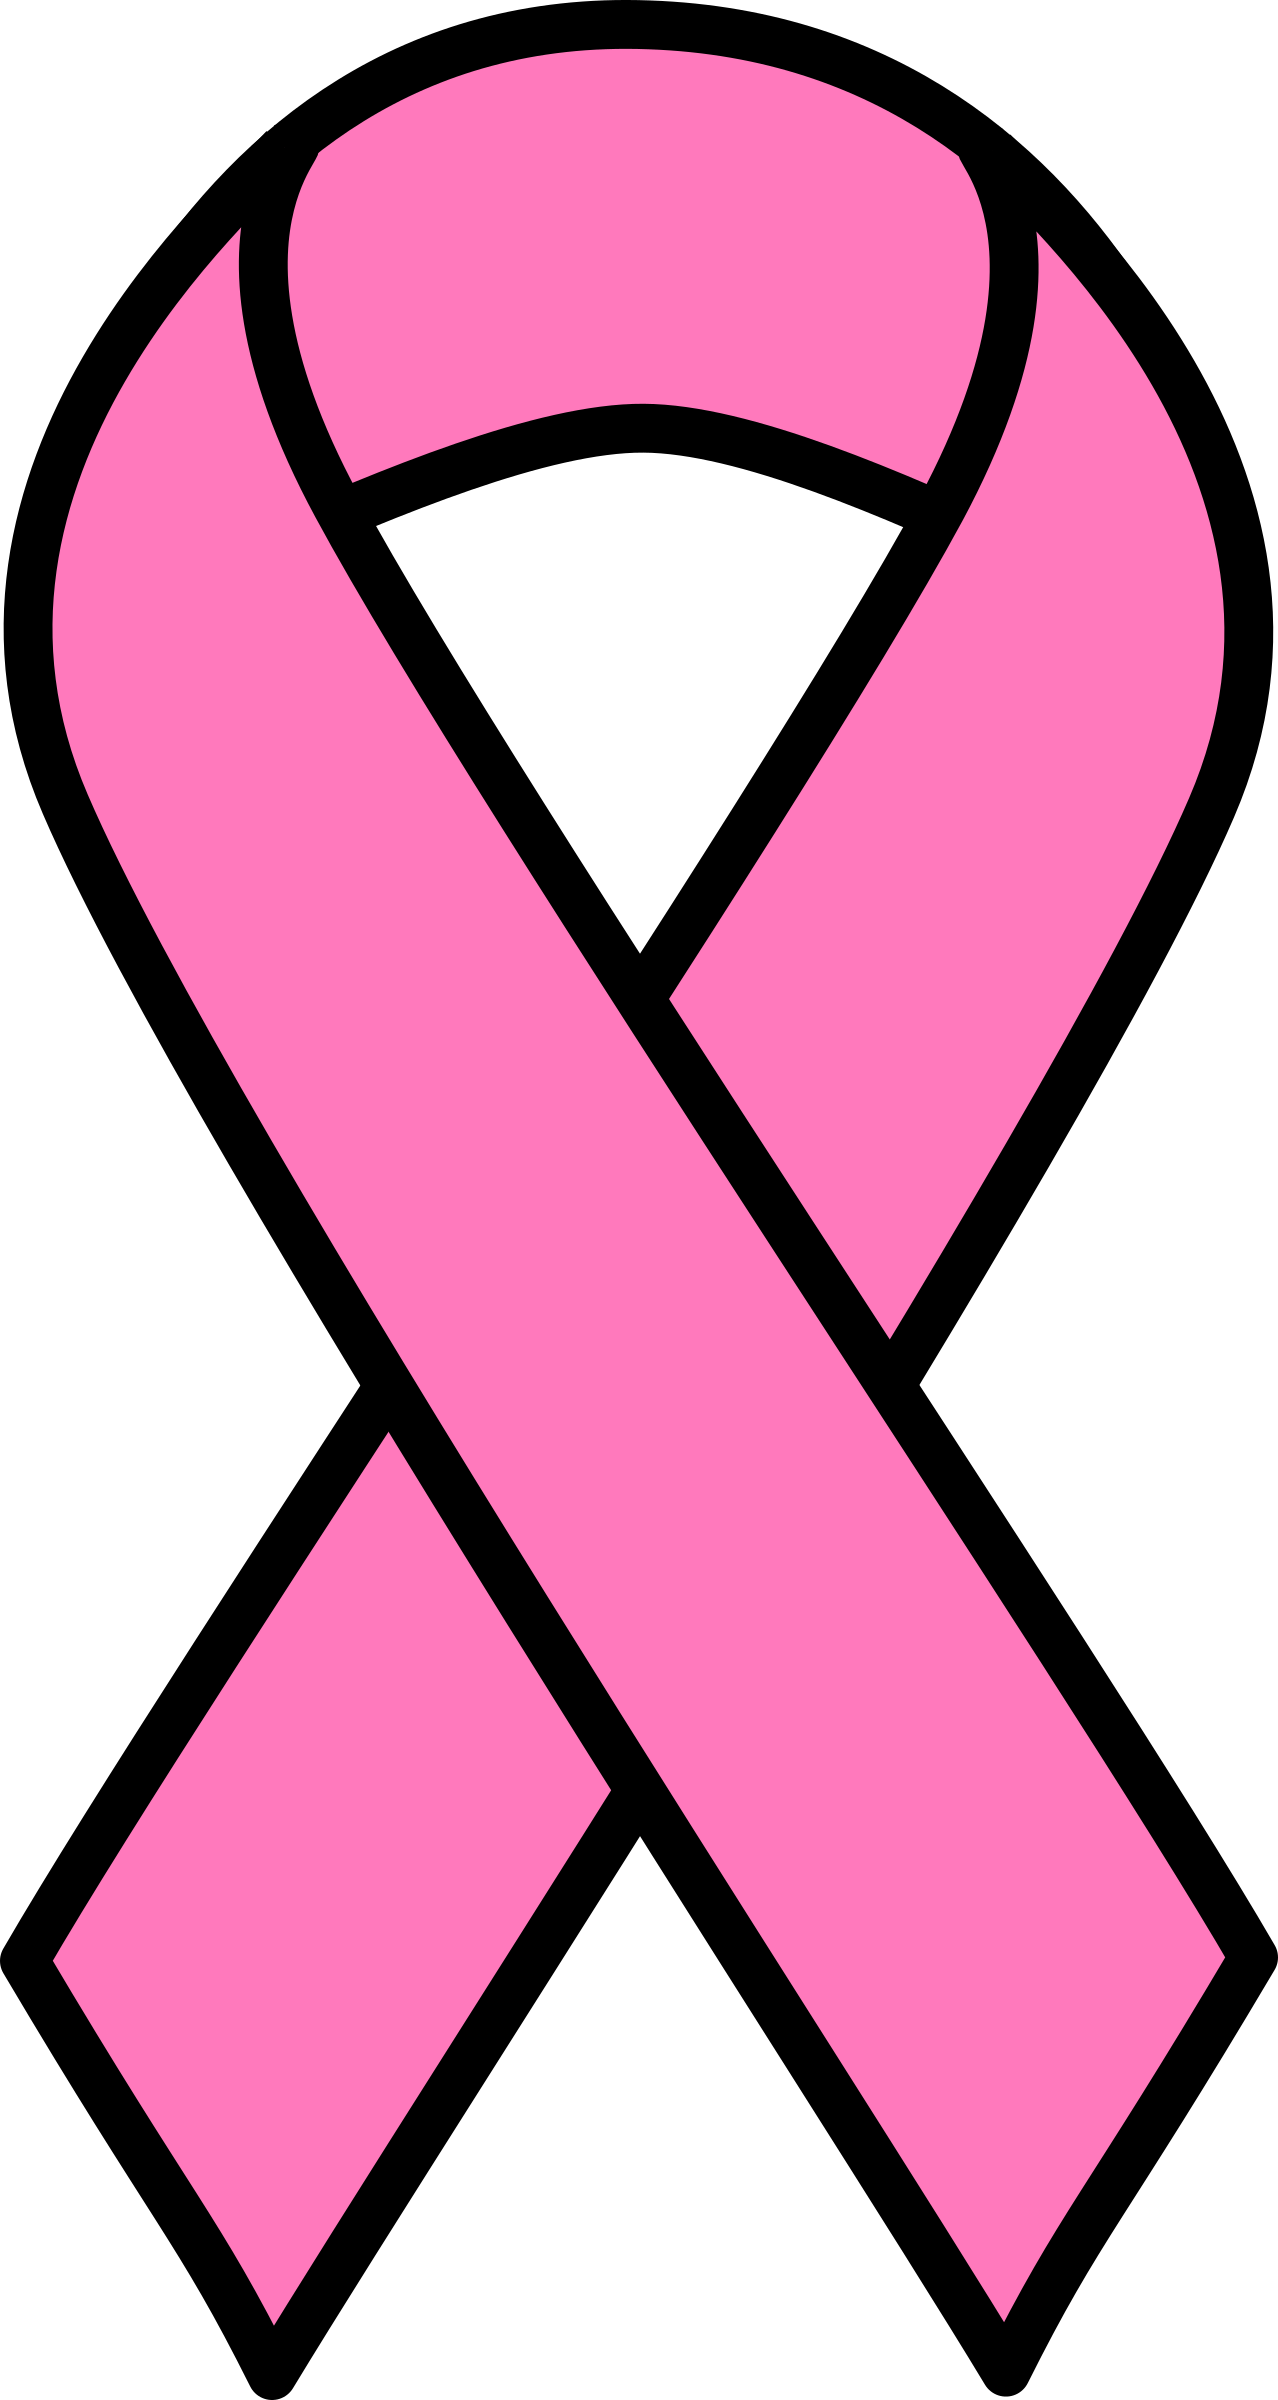 Cancer clipart. Image pink breast ribbon